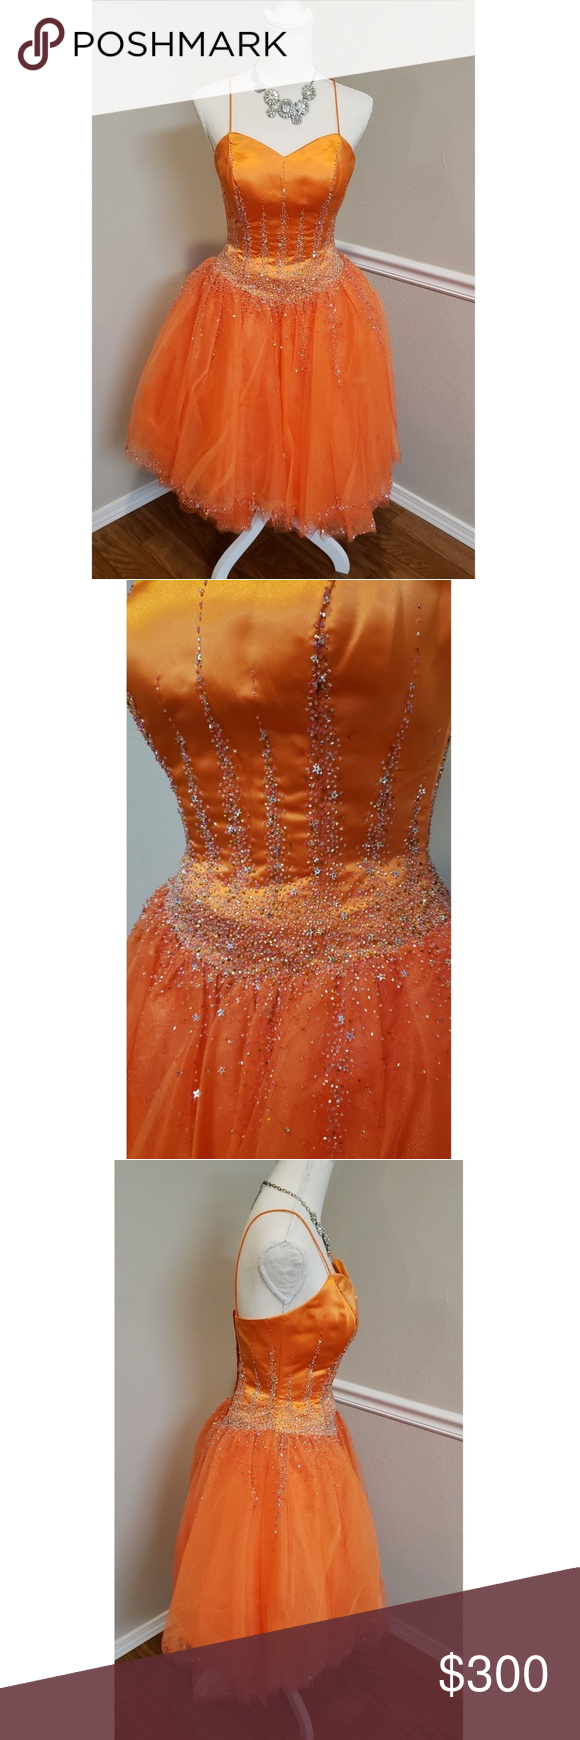 Xcite Vintage Prom Dress Brand Xcite Color Orange Size 6 Measurements Flat Pit To Pit 16 Inches Prom Dresses Vintage Vintage Prom Vintage Dresses [ 1740 x 580 Pixel ]